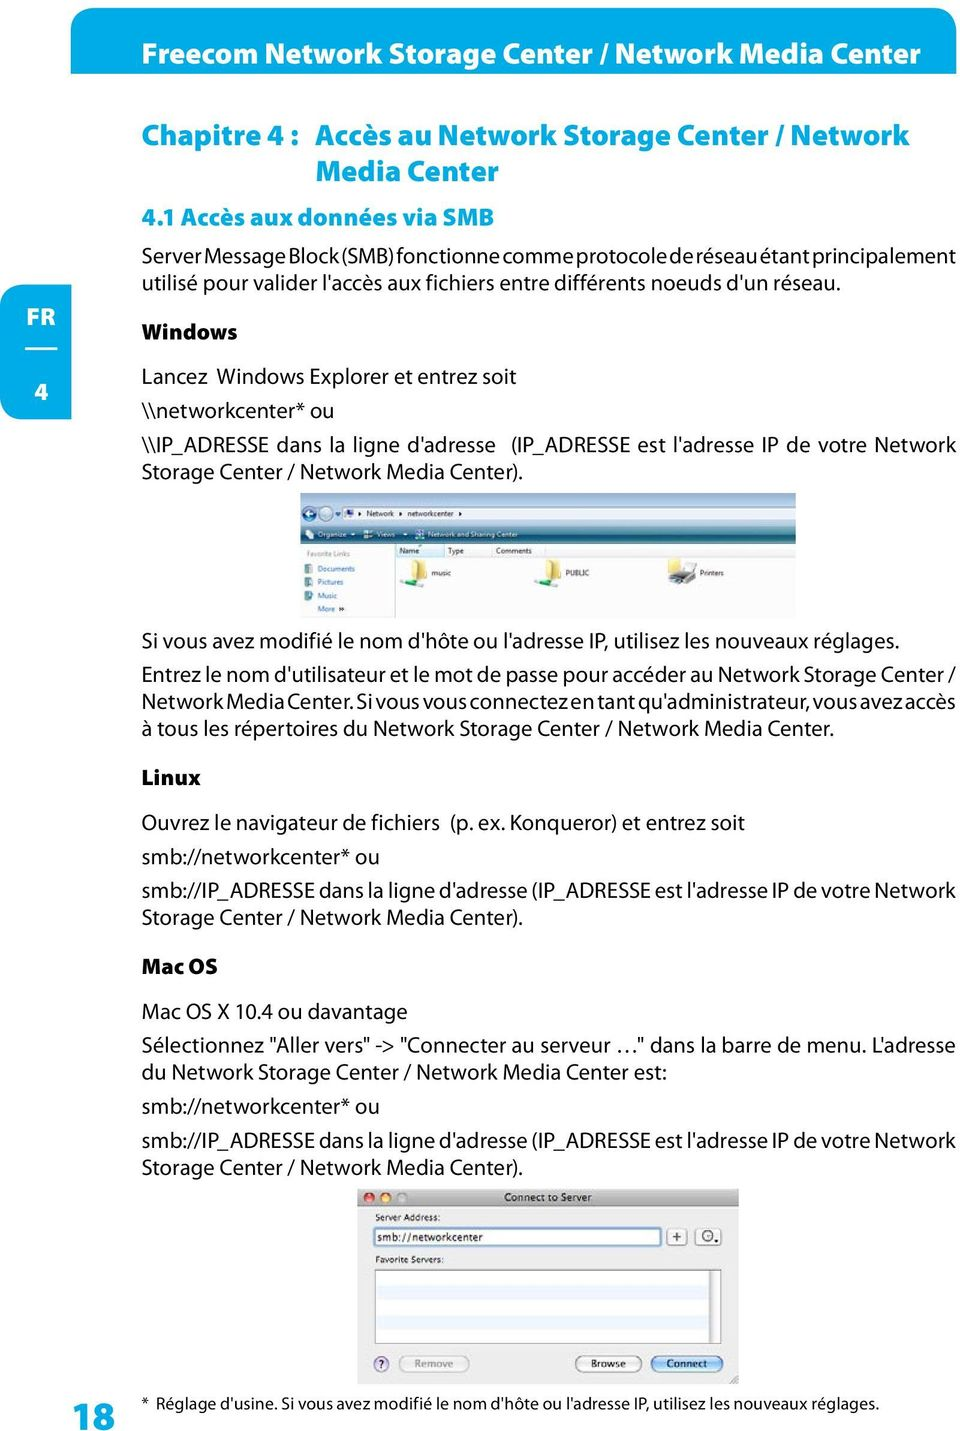 Windows Lancez Windows Explorer et entrez soit \\networkcenter* ou \\IP_ADRESSE dans la ligne d'adresse (IP_ADRESSE est l'adresse IP de votre Network Storage Center / Network Media Center).